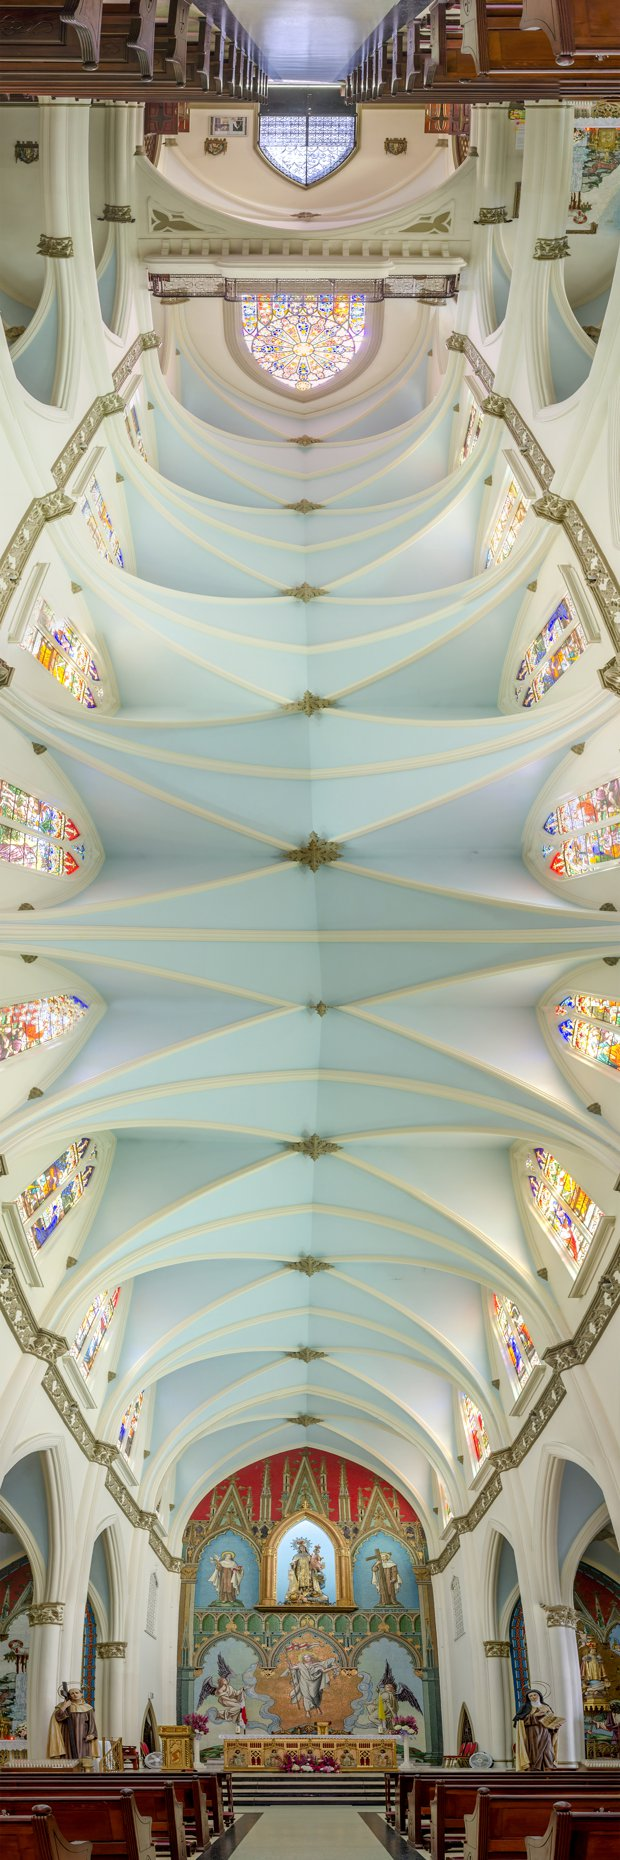 https://www.citylab.com/design/2017/06/latin-america-church-ceiling-photography/530421/?utm_source=feed